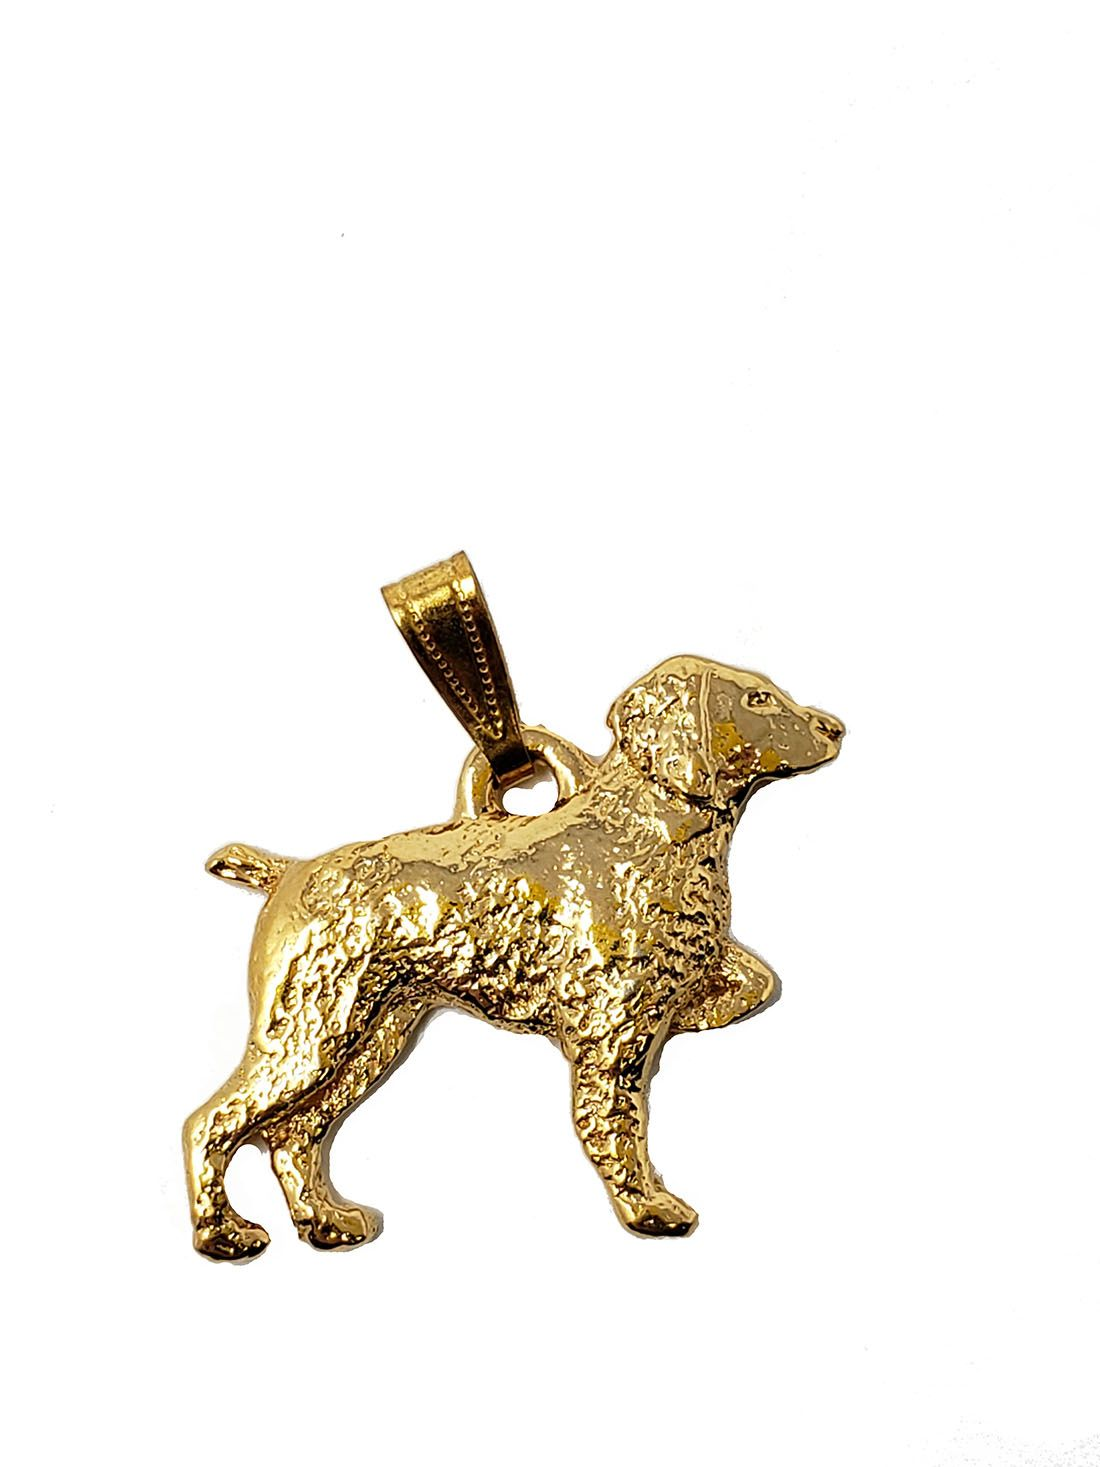 Brittany 24K Gold Plated Pendant